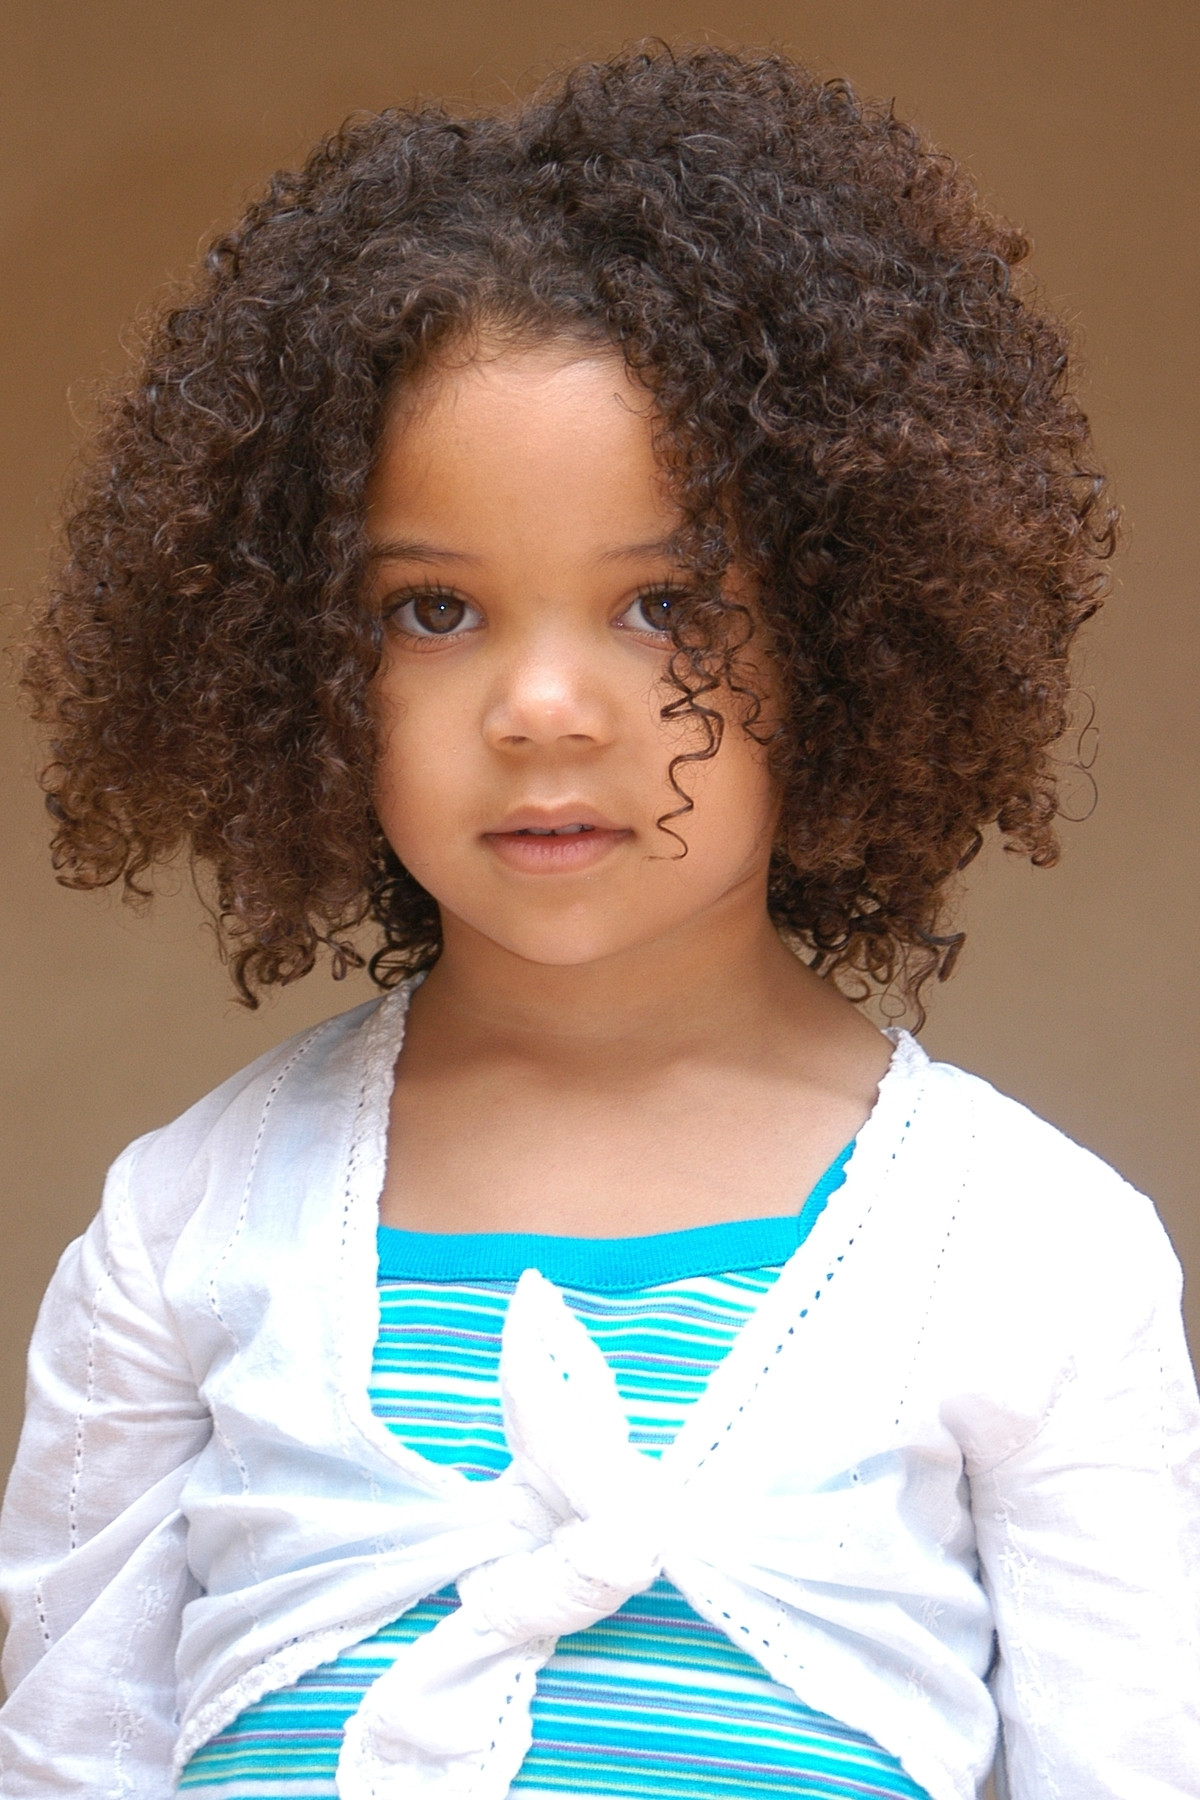 Best ideas about Cute Hairstyles For Mixed Girls . Save or Pin Mixed Girl Short Hairstyles Now.